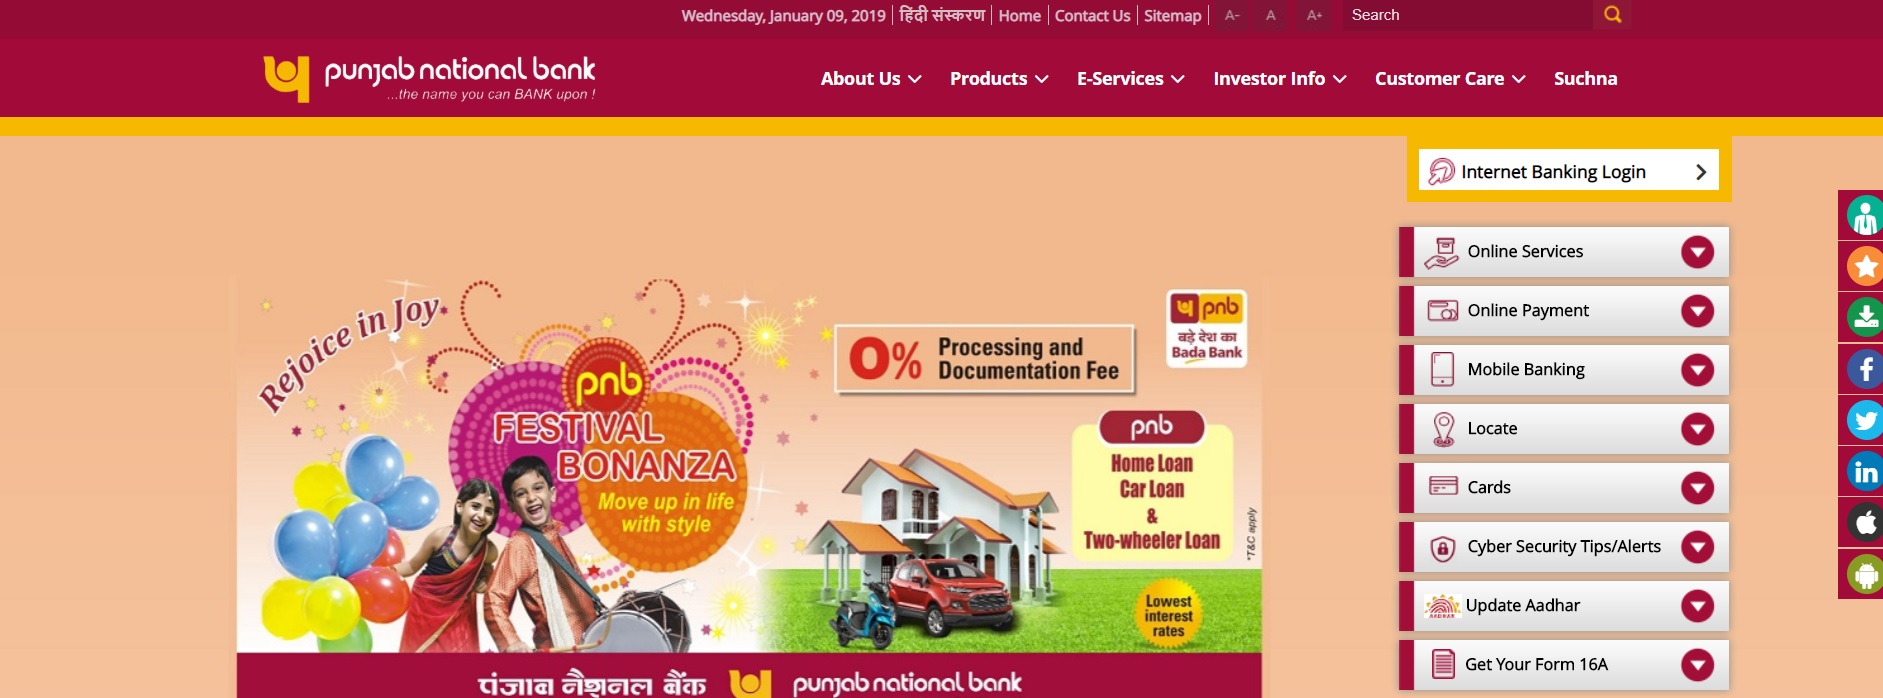 Online Login for Punjab National Bank (PNB)